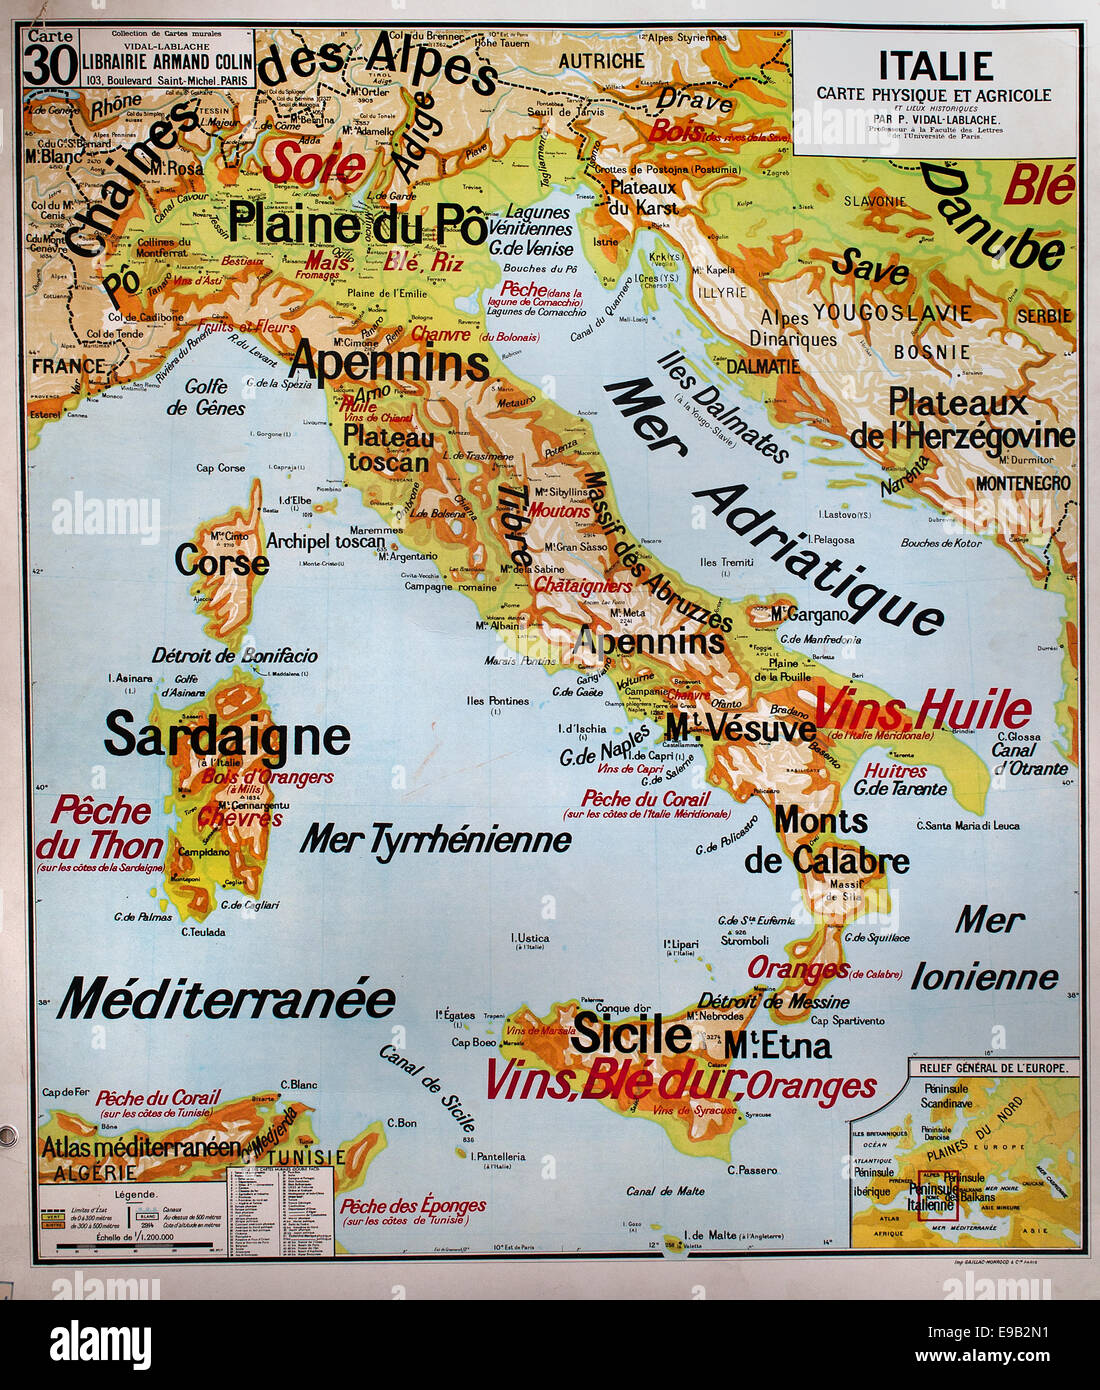 Map mediterranean sea italy france stock photos map mediterranean old school world wall map italy mediterranean french cartography stock image gumiabroncs Image collections